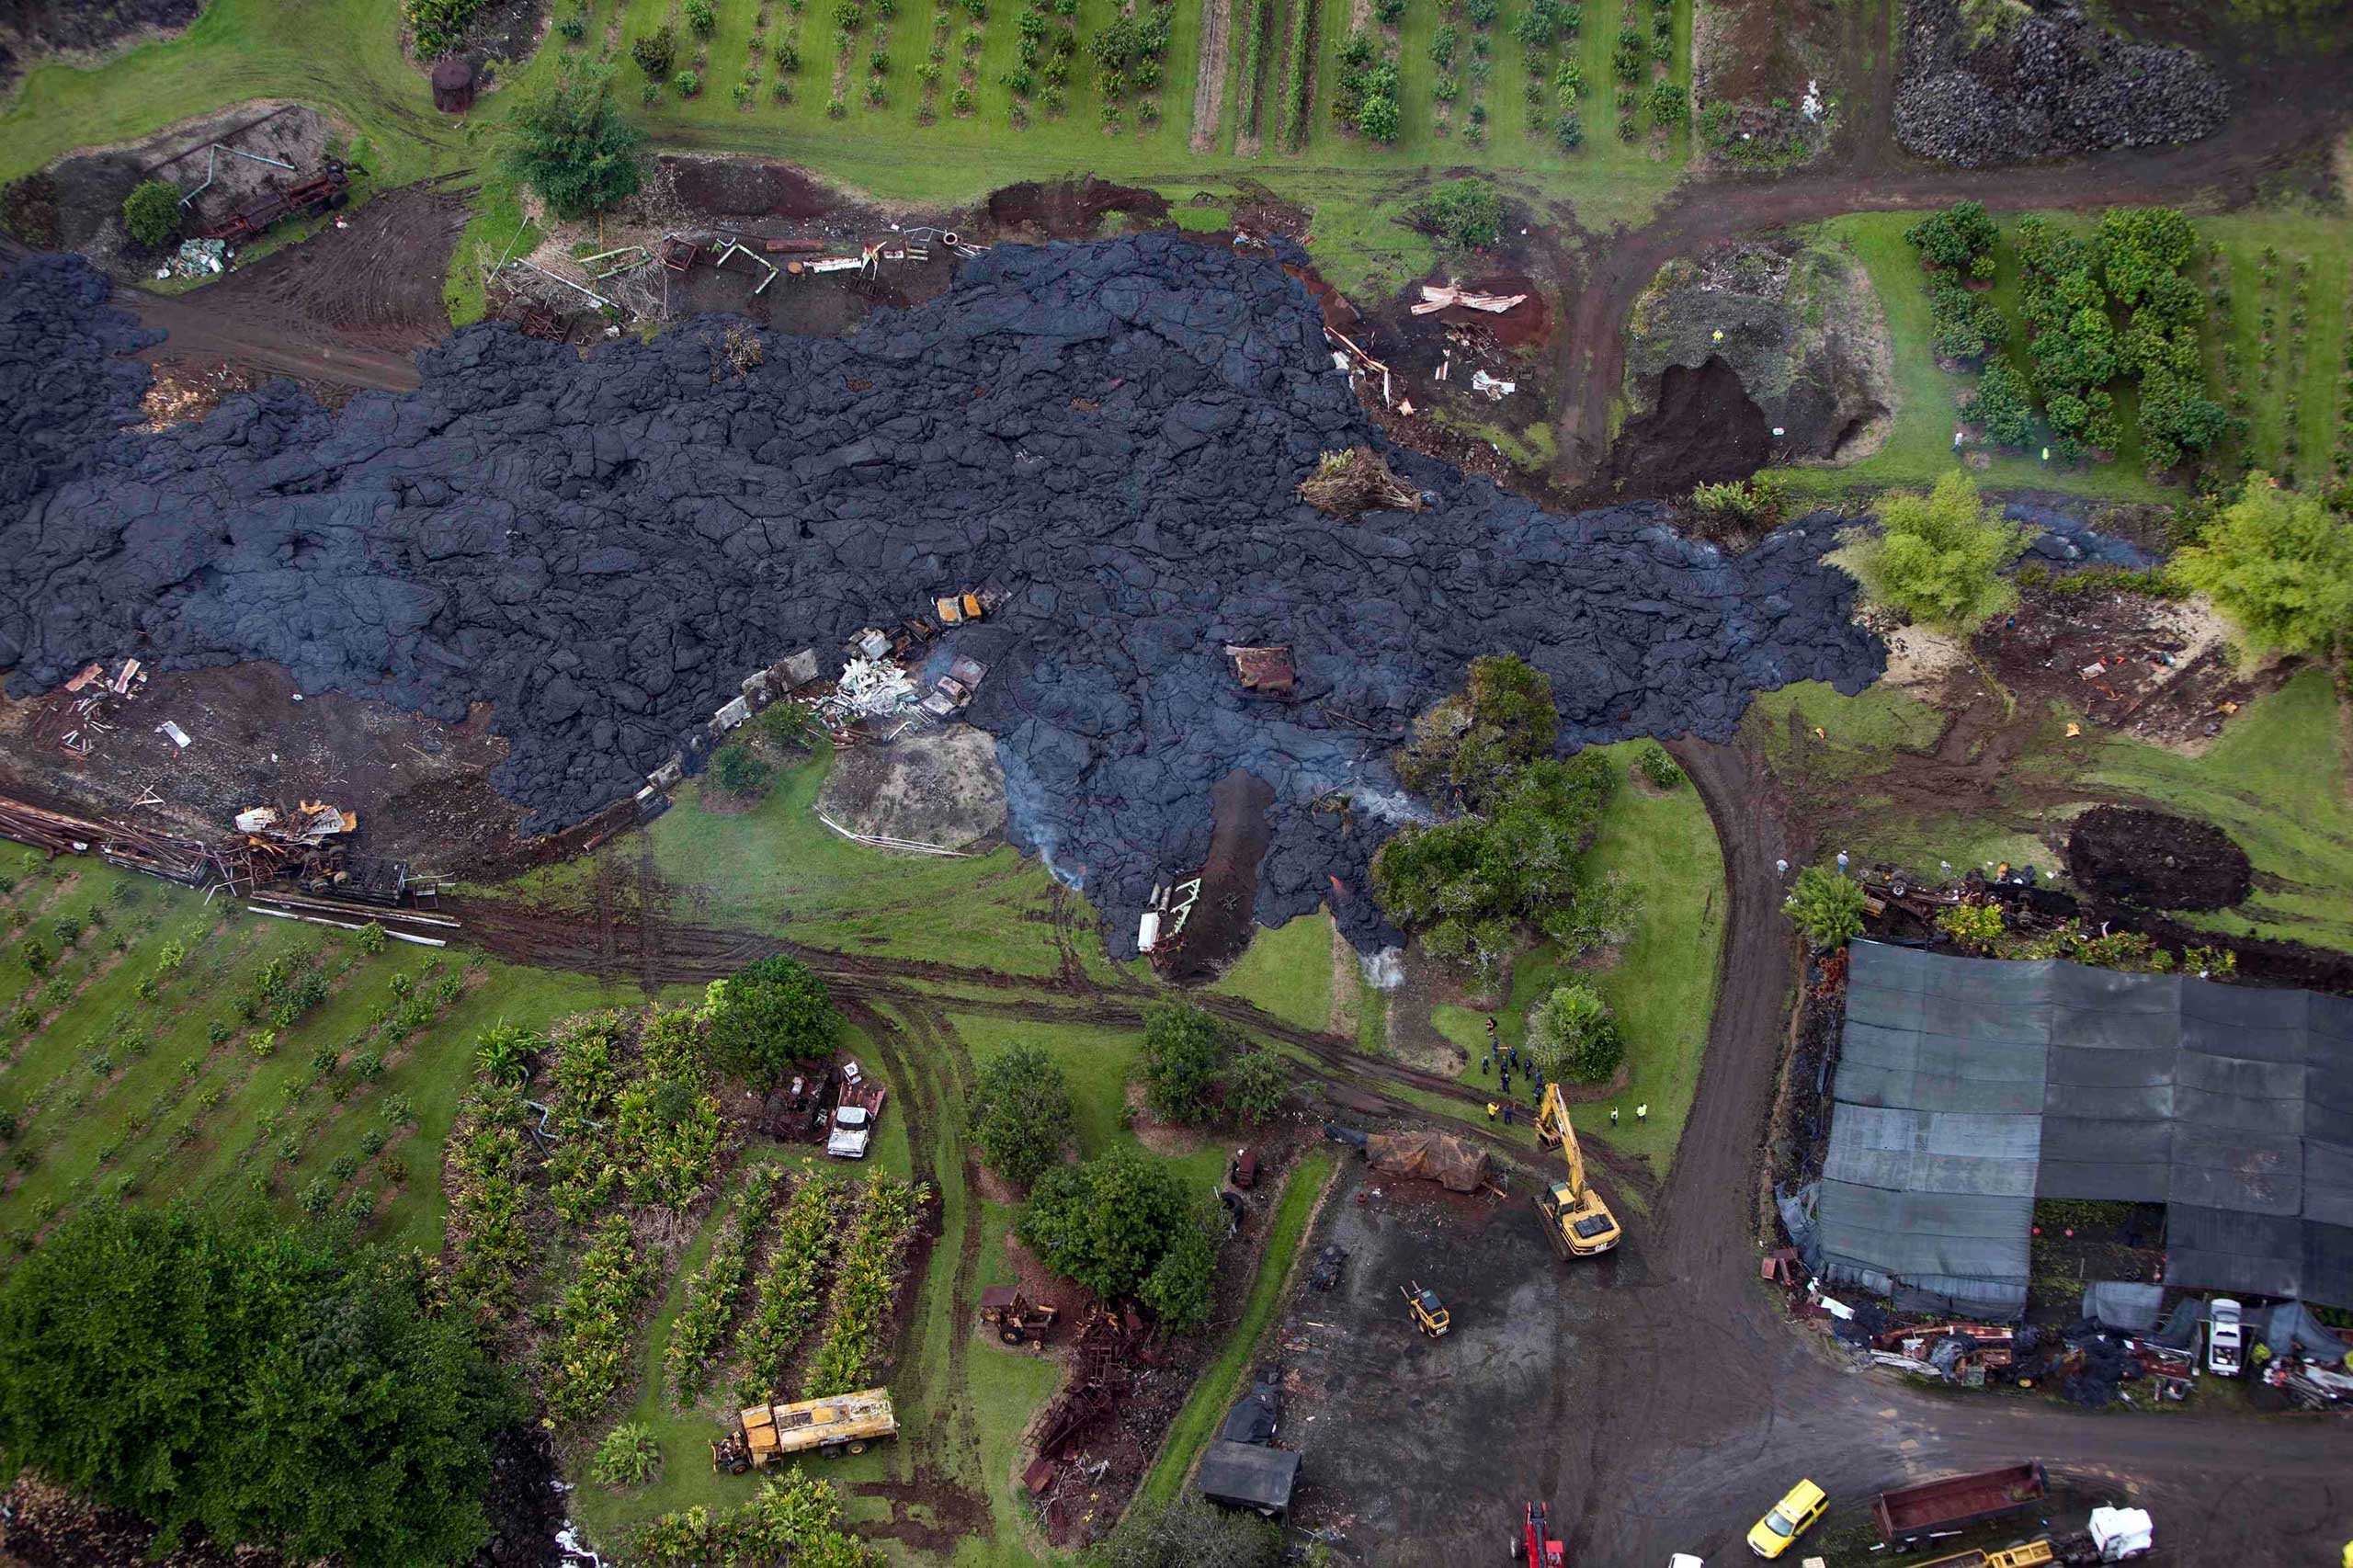 Construction crews try to divert lava from Kilauea Volcano near a home in the village of Pahoa, Hawaii on Oct. 29, 2014.